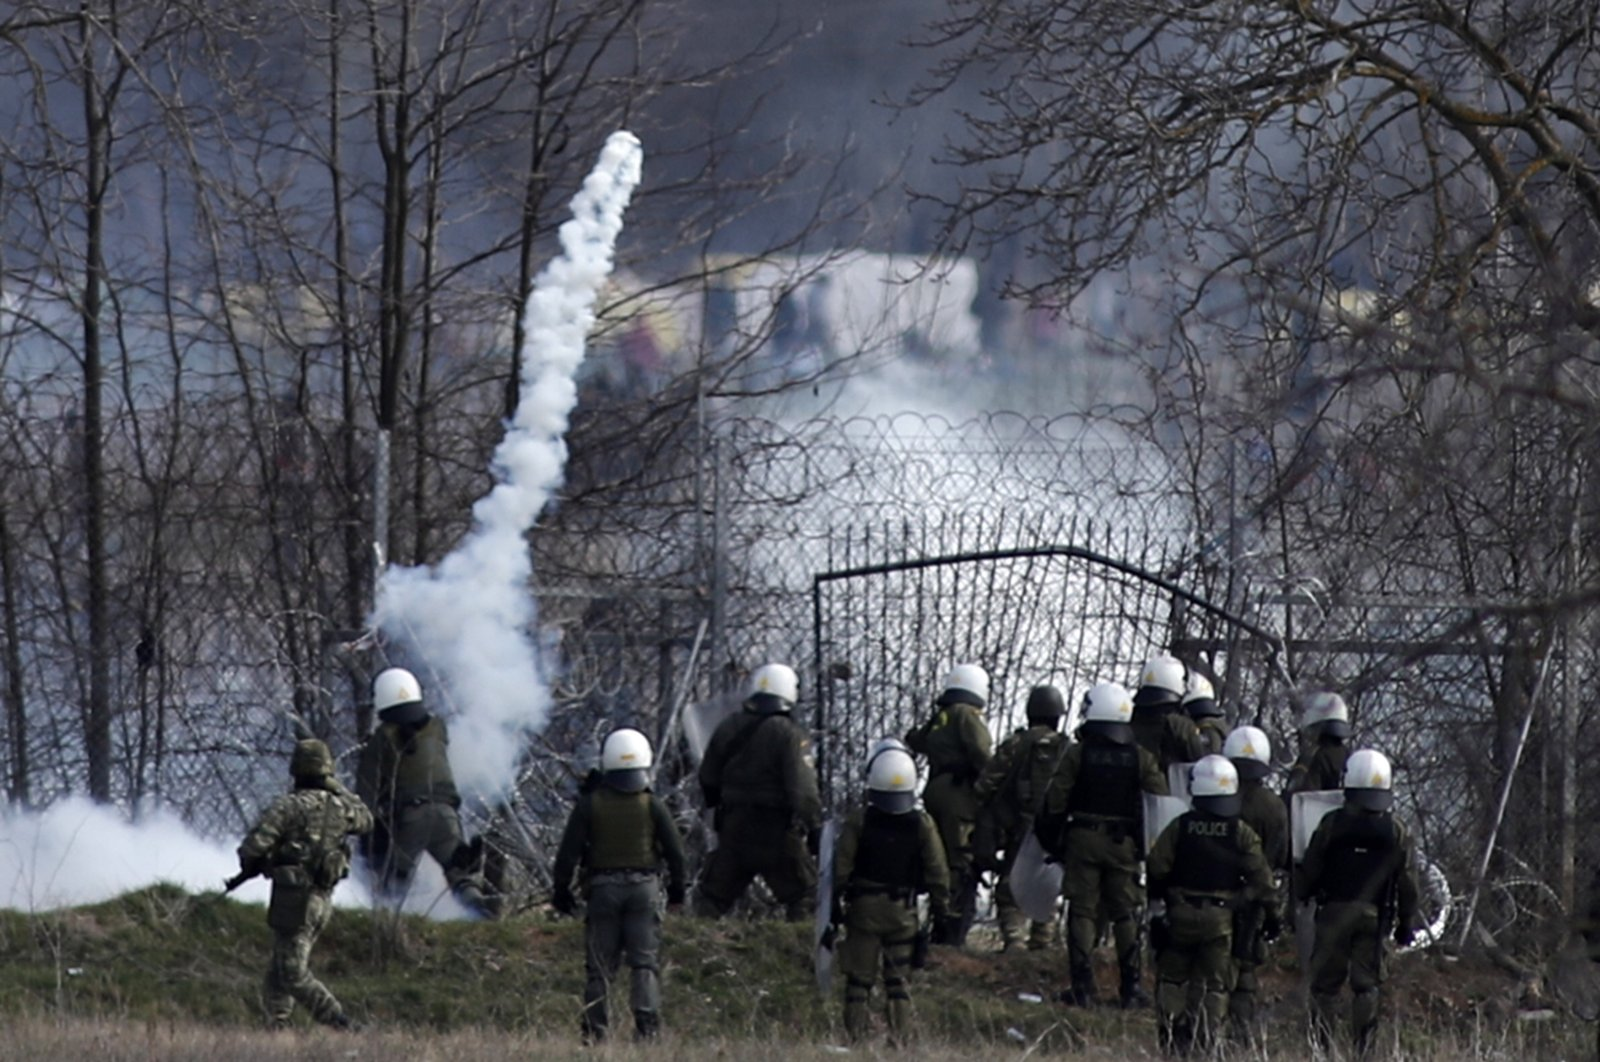 Greek police guard as migrants gather at a border fence on the Turkish side, during clashes at the Greek-Turkish border in Kastanies, Evros region, Saturday, March 7, 2020. (AP)